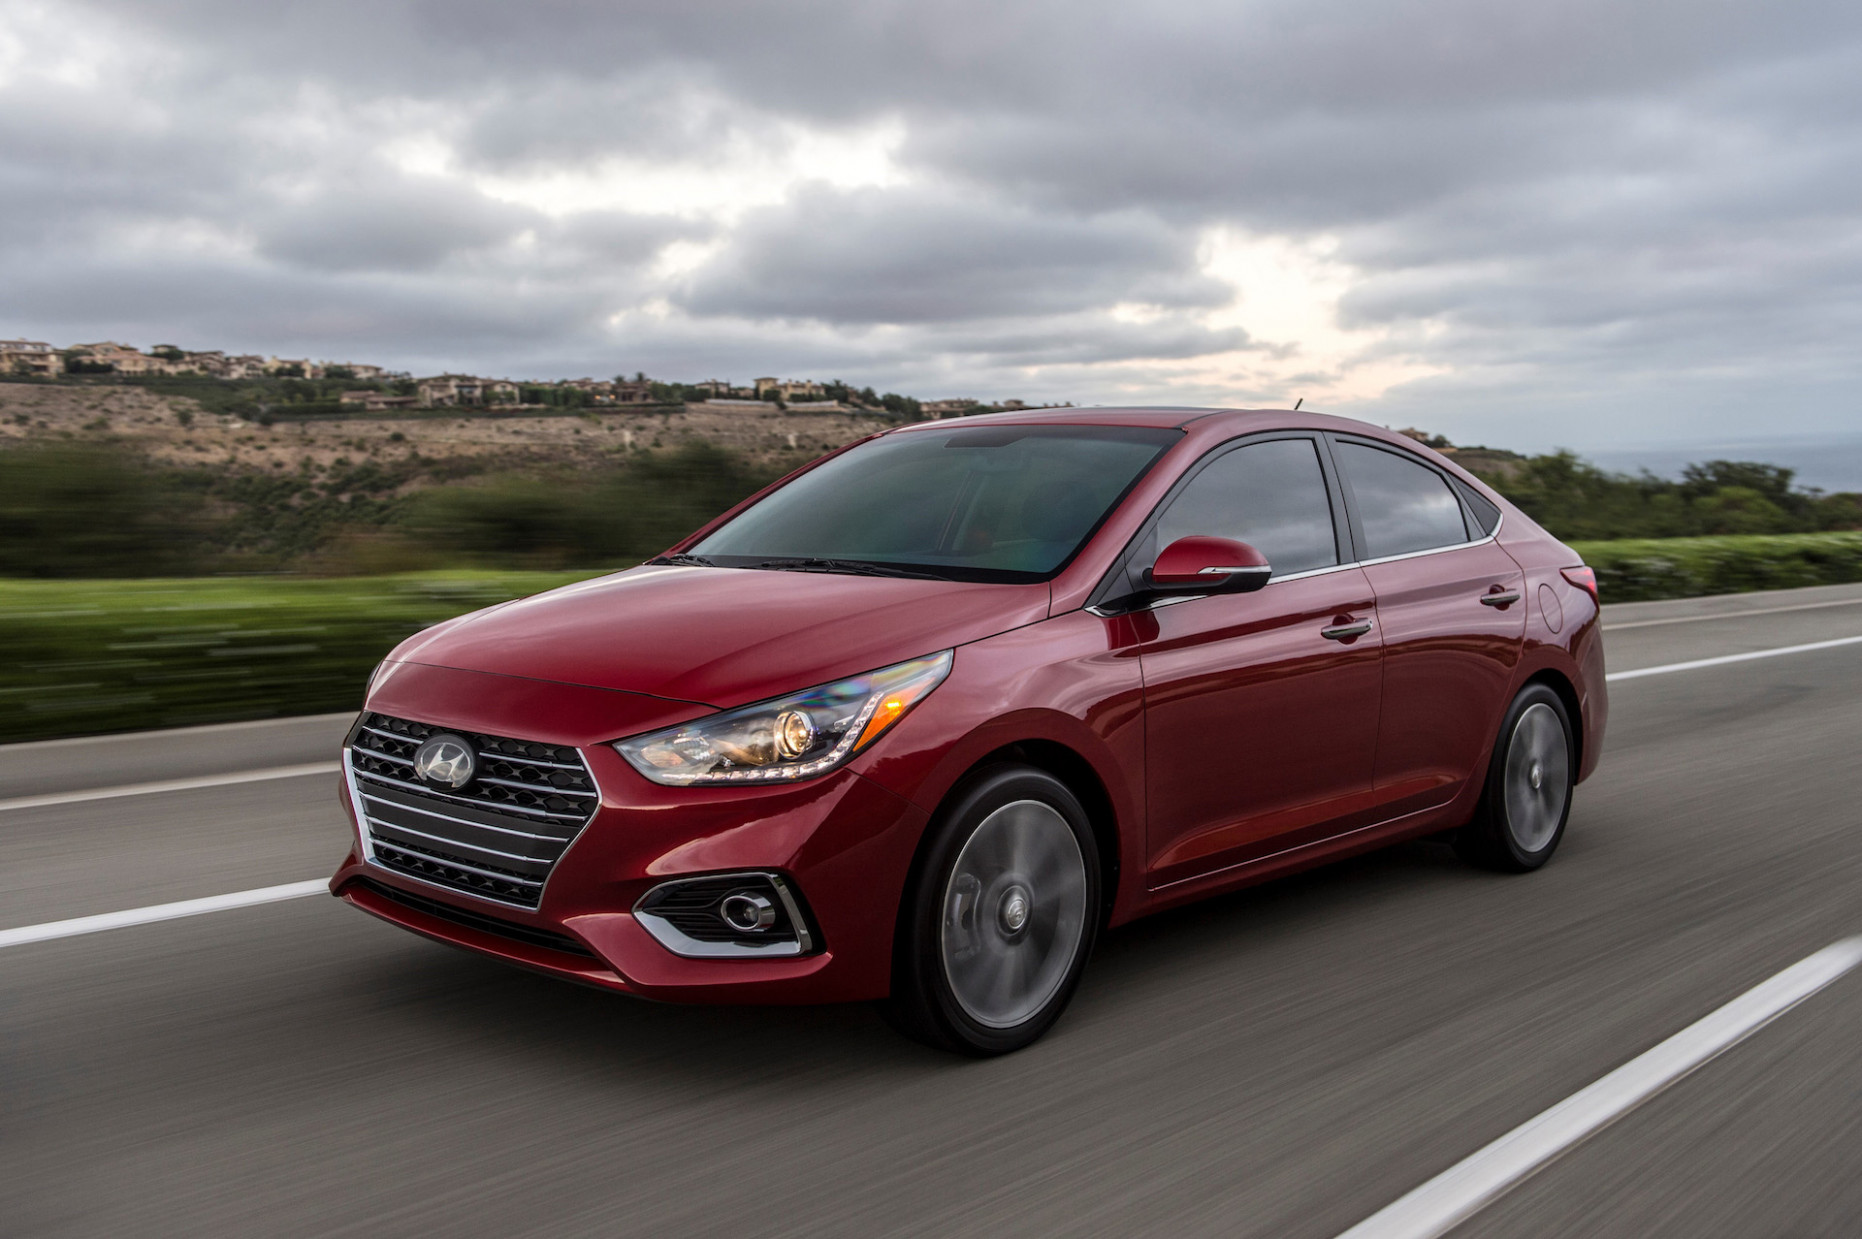 6 Hyundai Accent Review, Ratings, Specs, Prices, and Photos ..